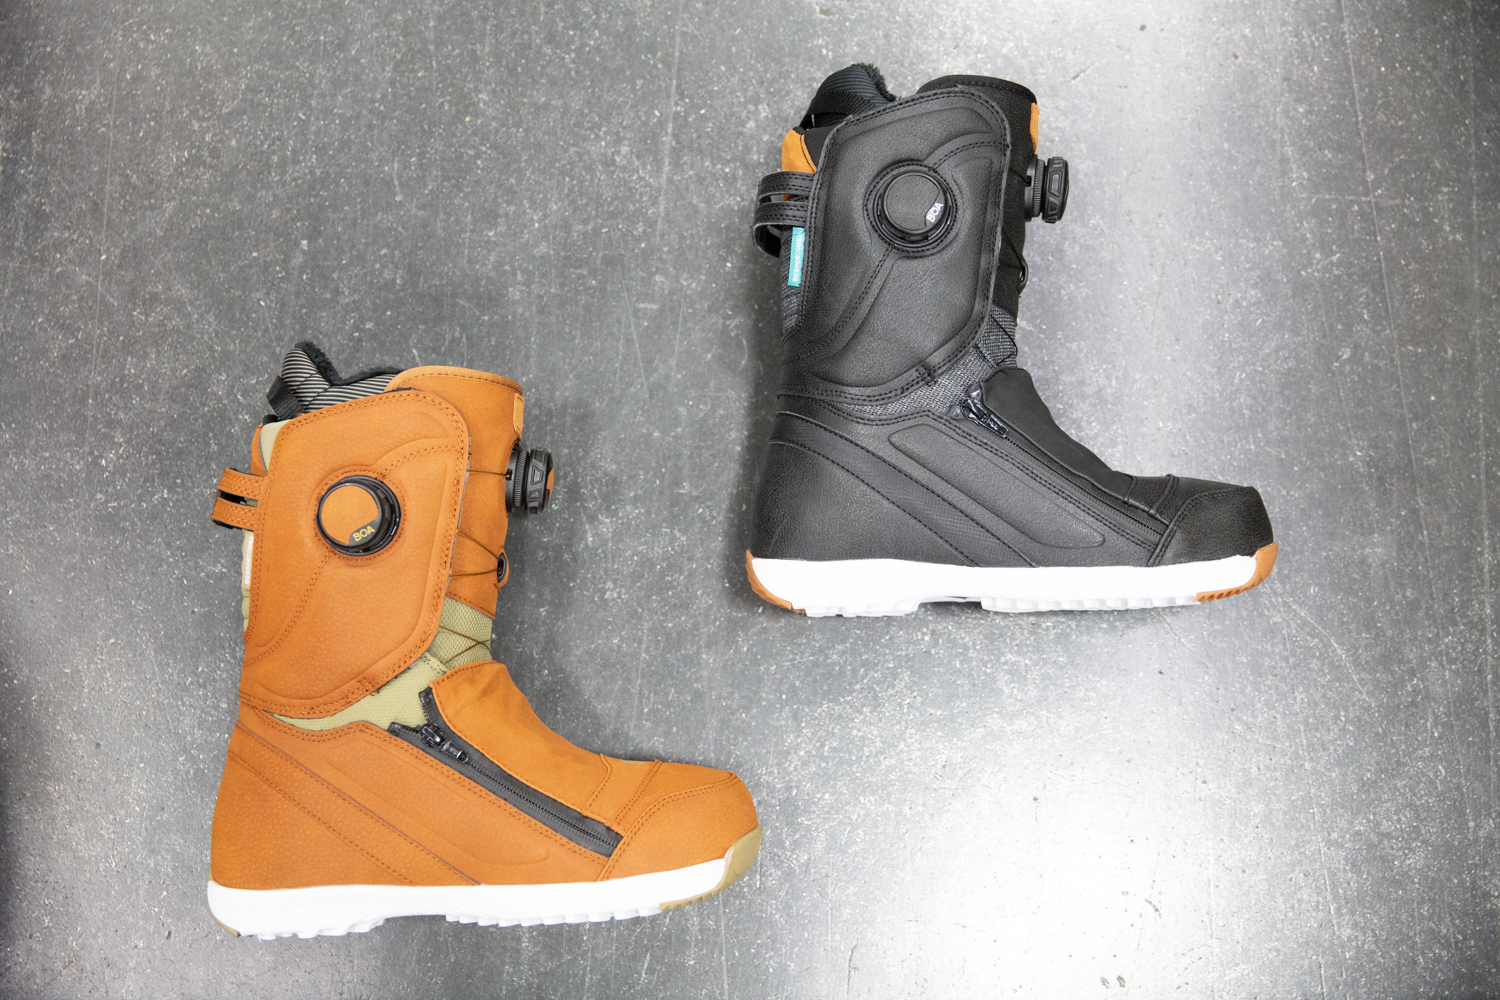 Best All Mountain Snowboard Boots 2020 2020 Winter Snowboard Gear Preview   Sneak Peak | evo